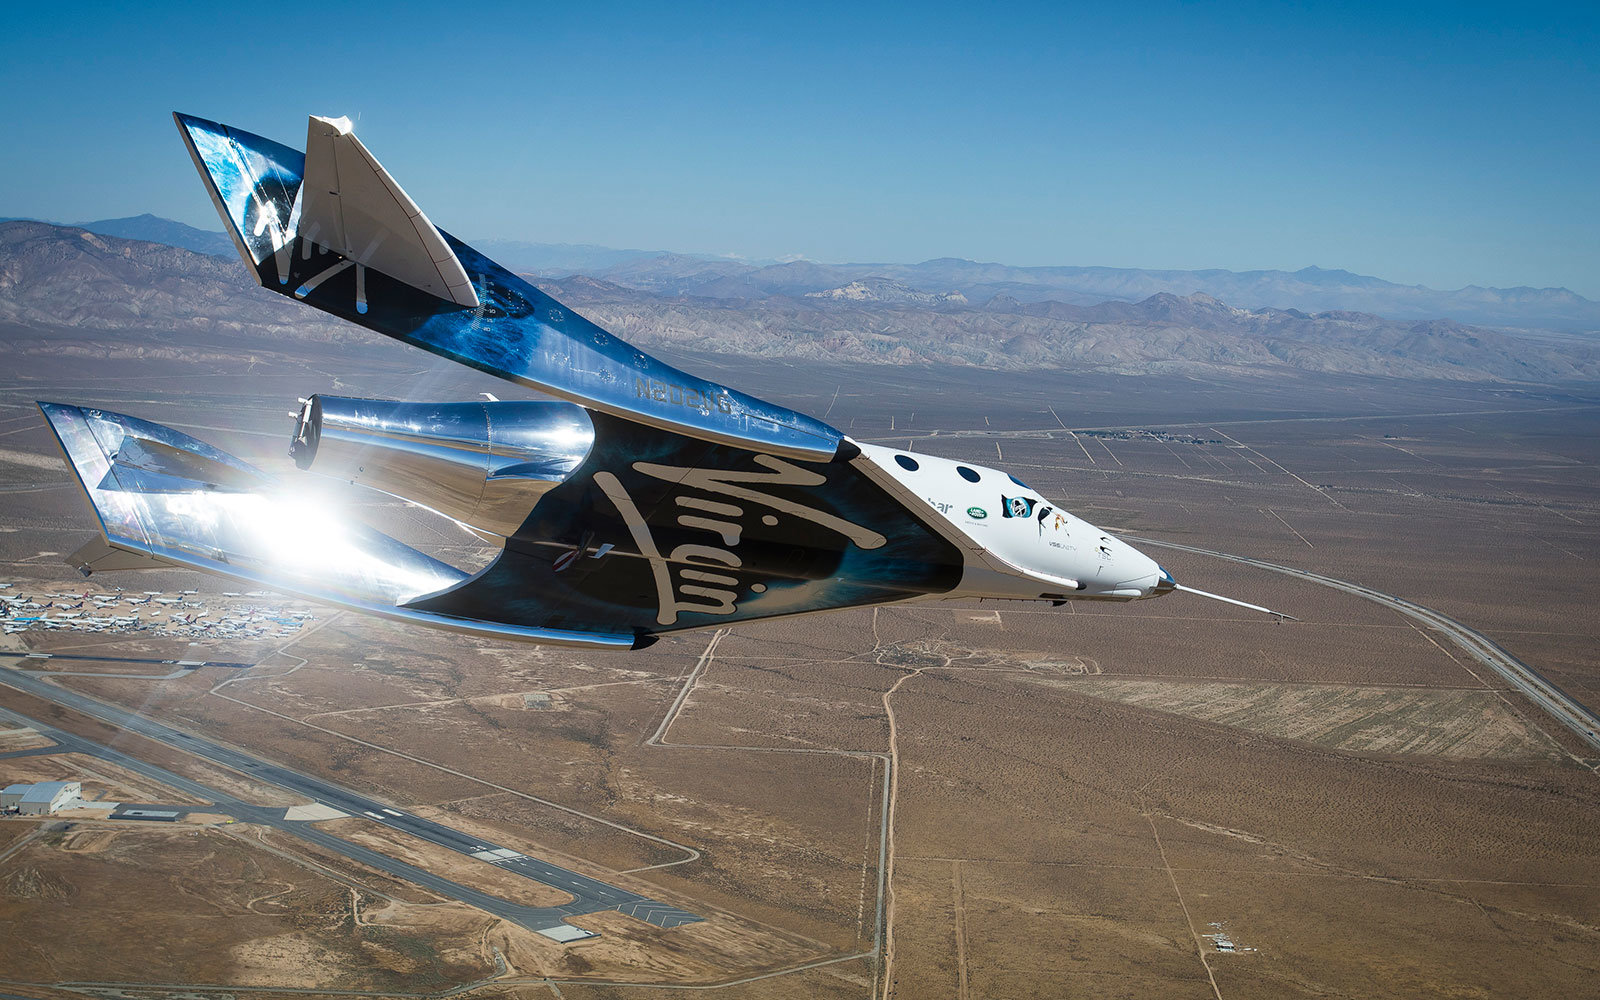 Virgin Galactic Tourist Spaceship VSS Unity